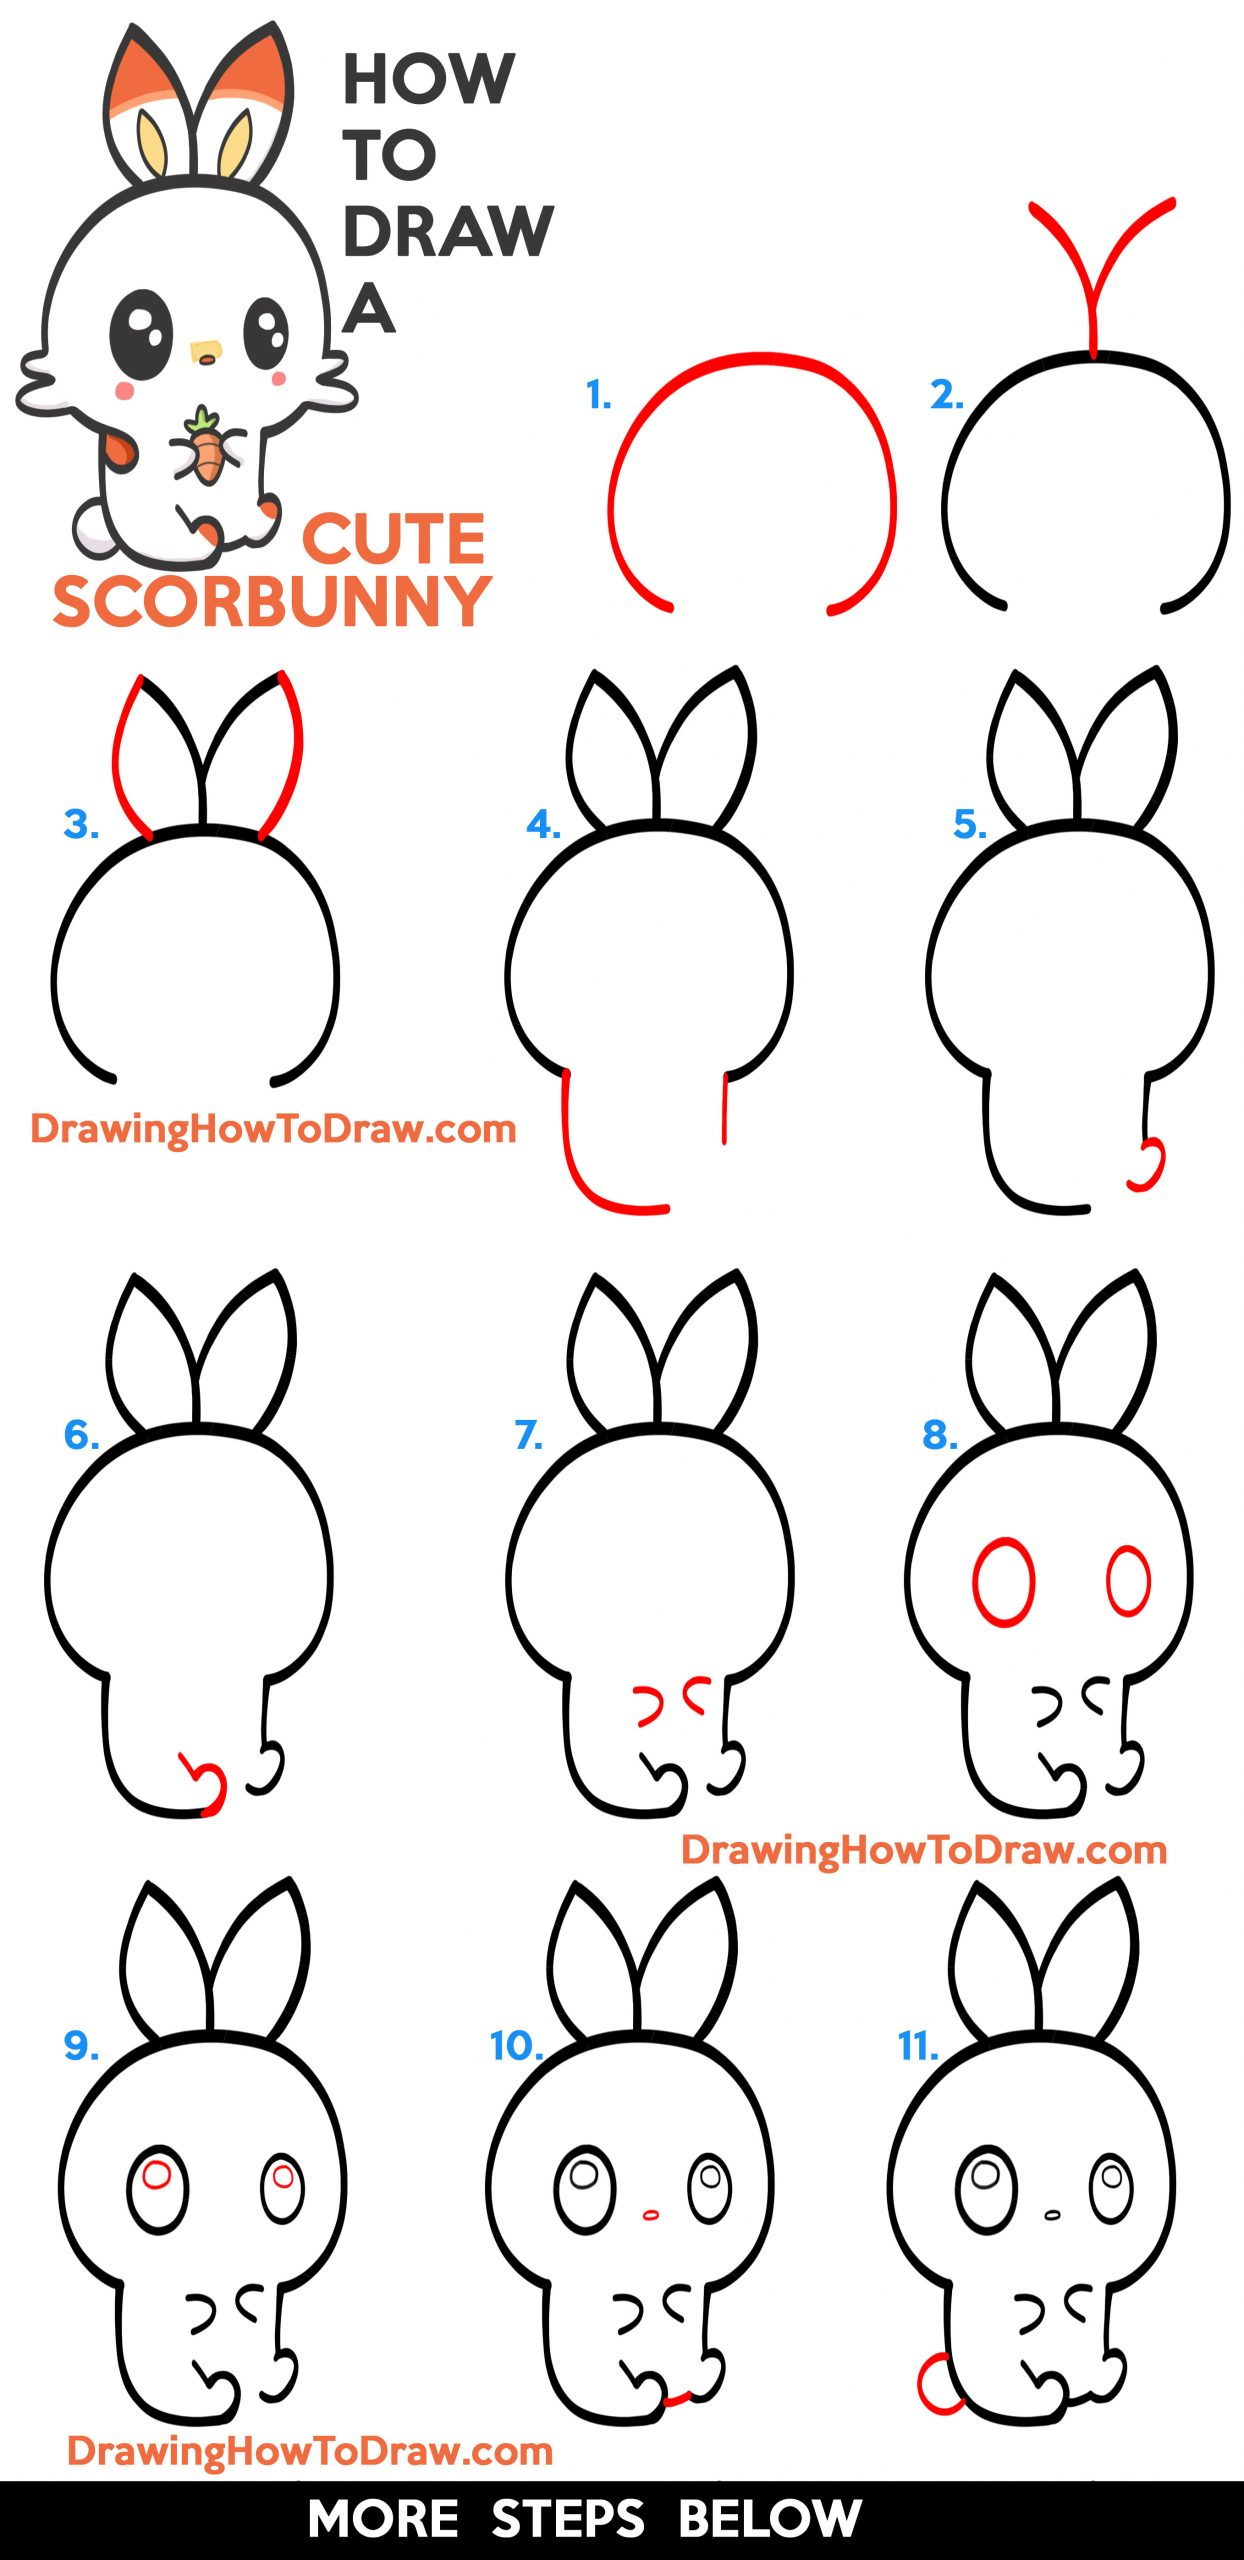 How to Draw a Cute (Kawaii / Chibi) Scorbunny from Pokemon - Easy Step by Step Drawing Tutorial for Kids